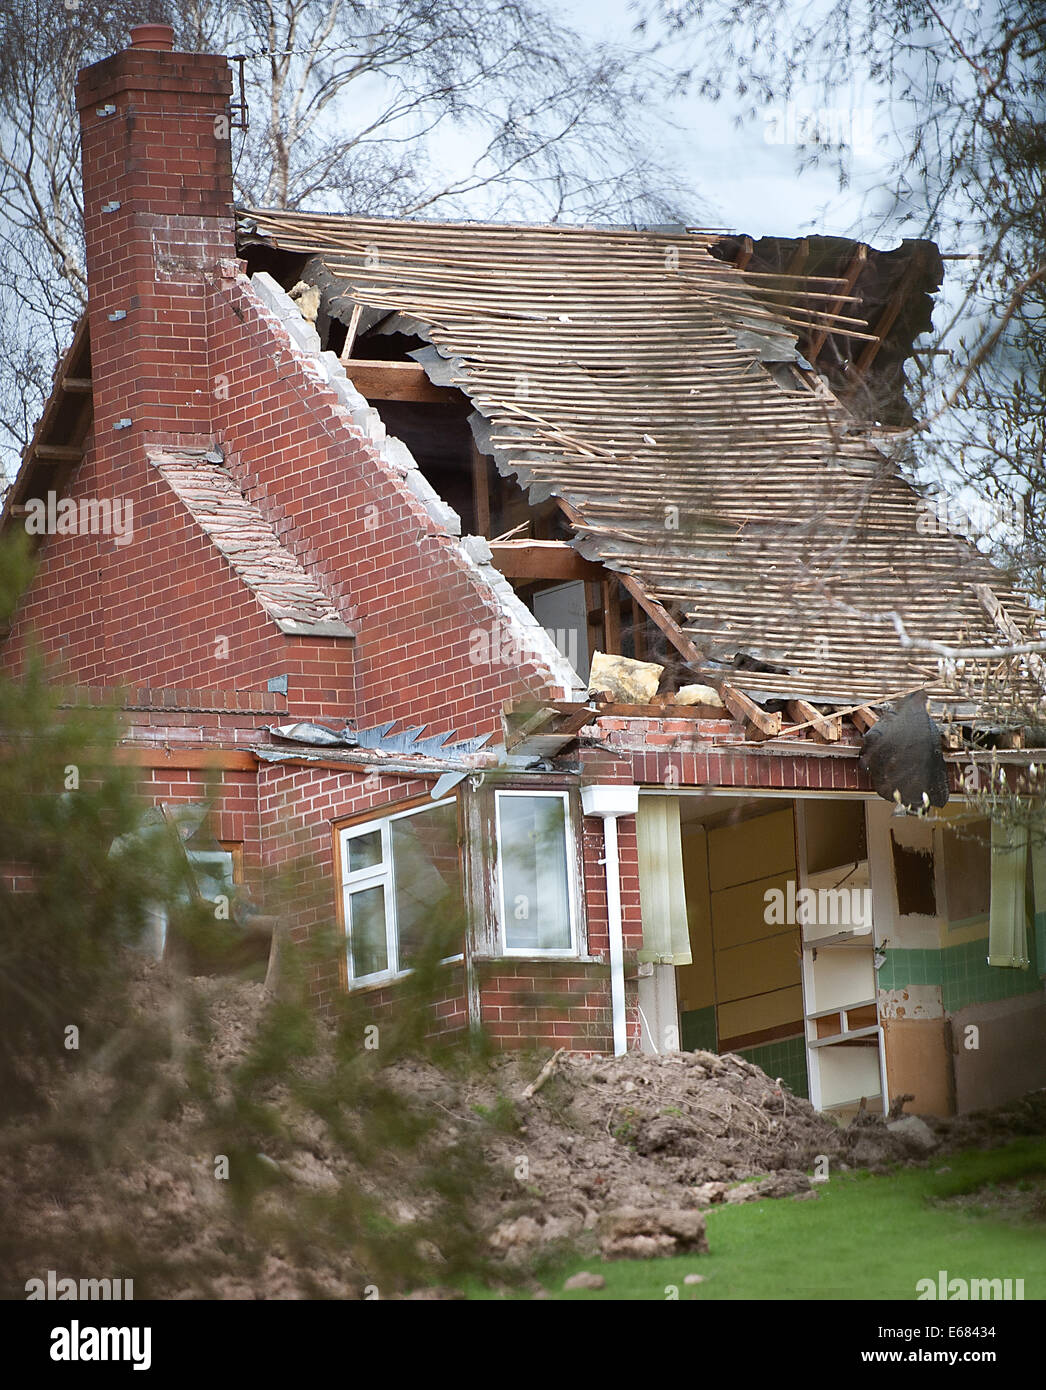 Percy Throwers old house demolished. - Stock Image